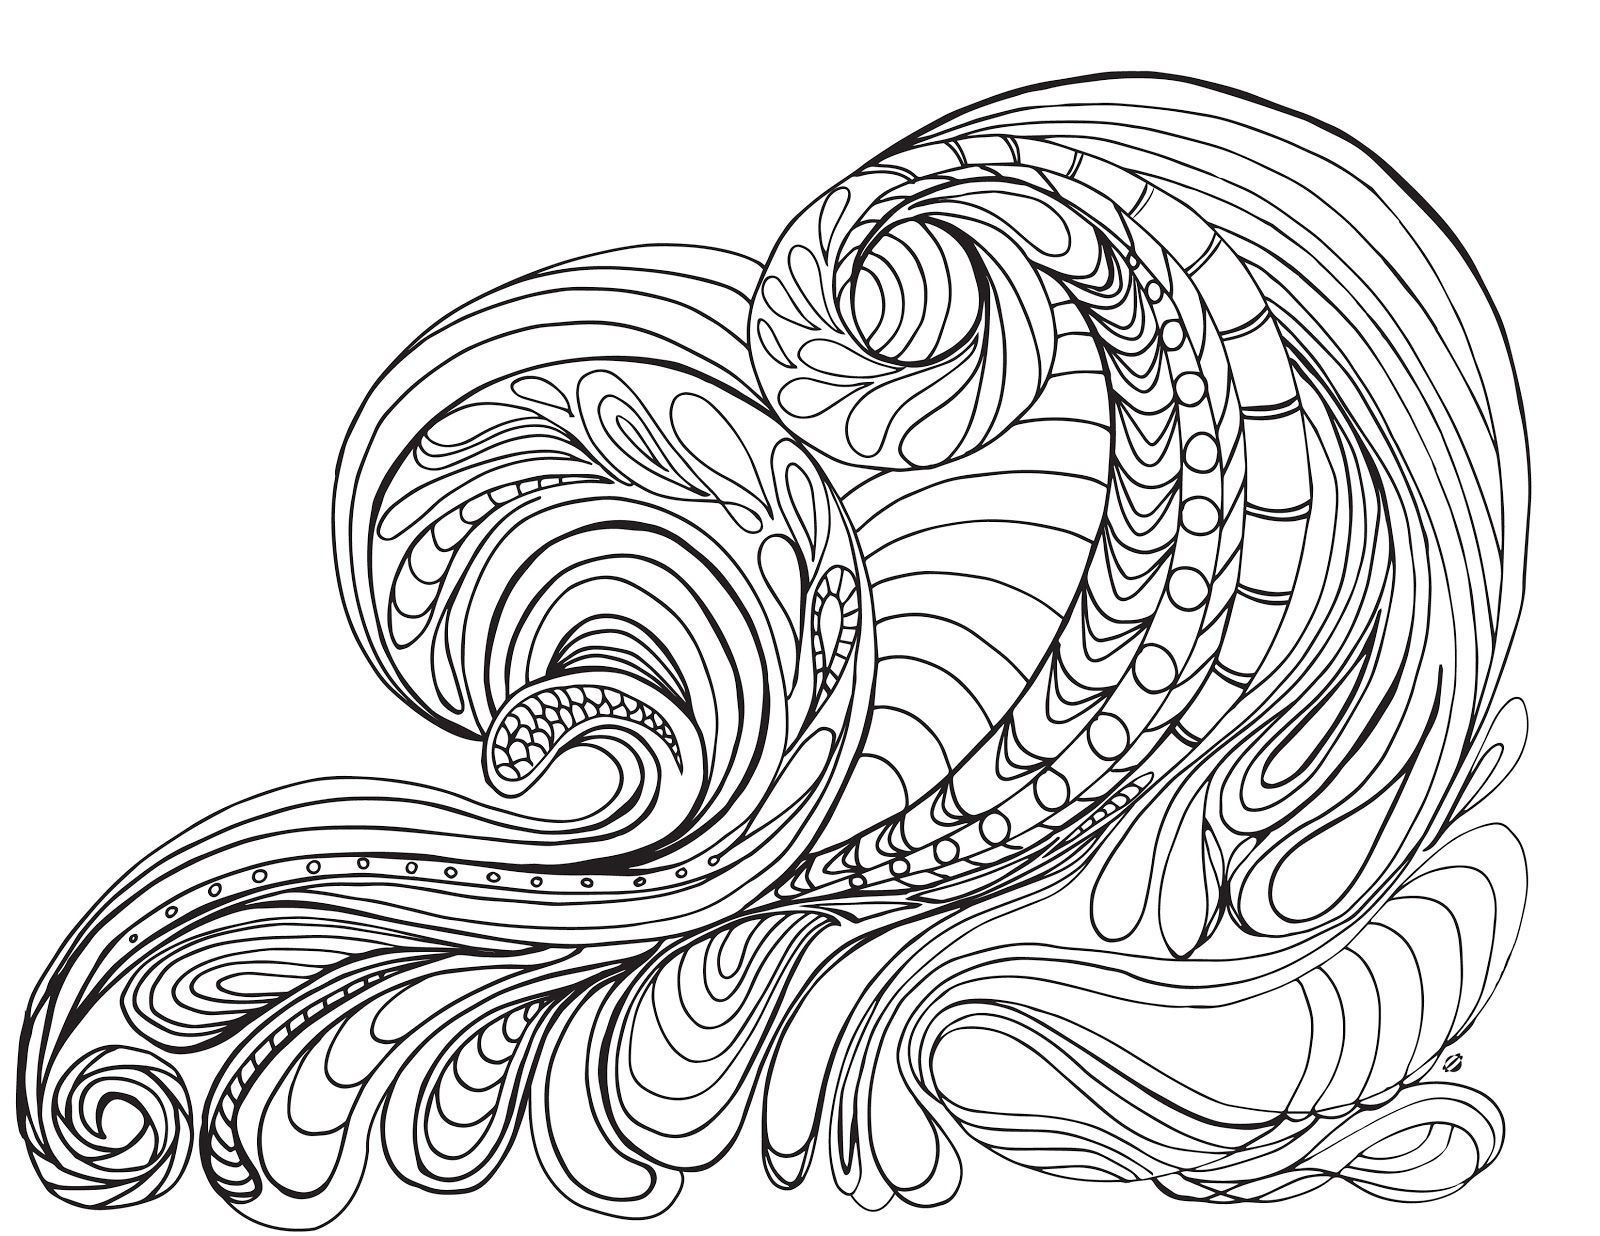 Coloring Pages Of Ocean Waves - Coloring Style Pages | Costal Dreams ...